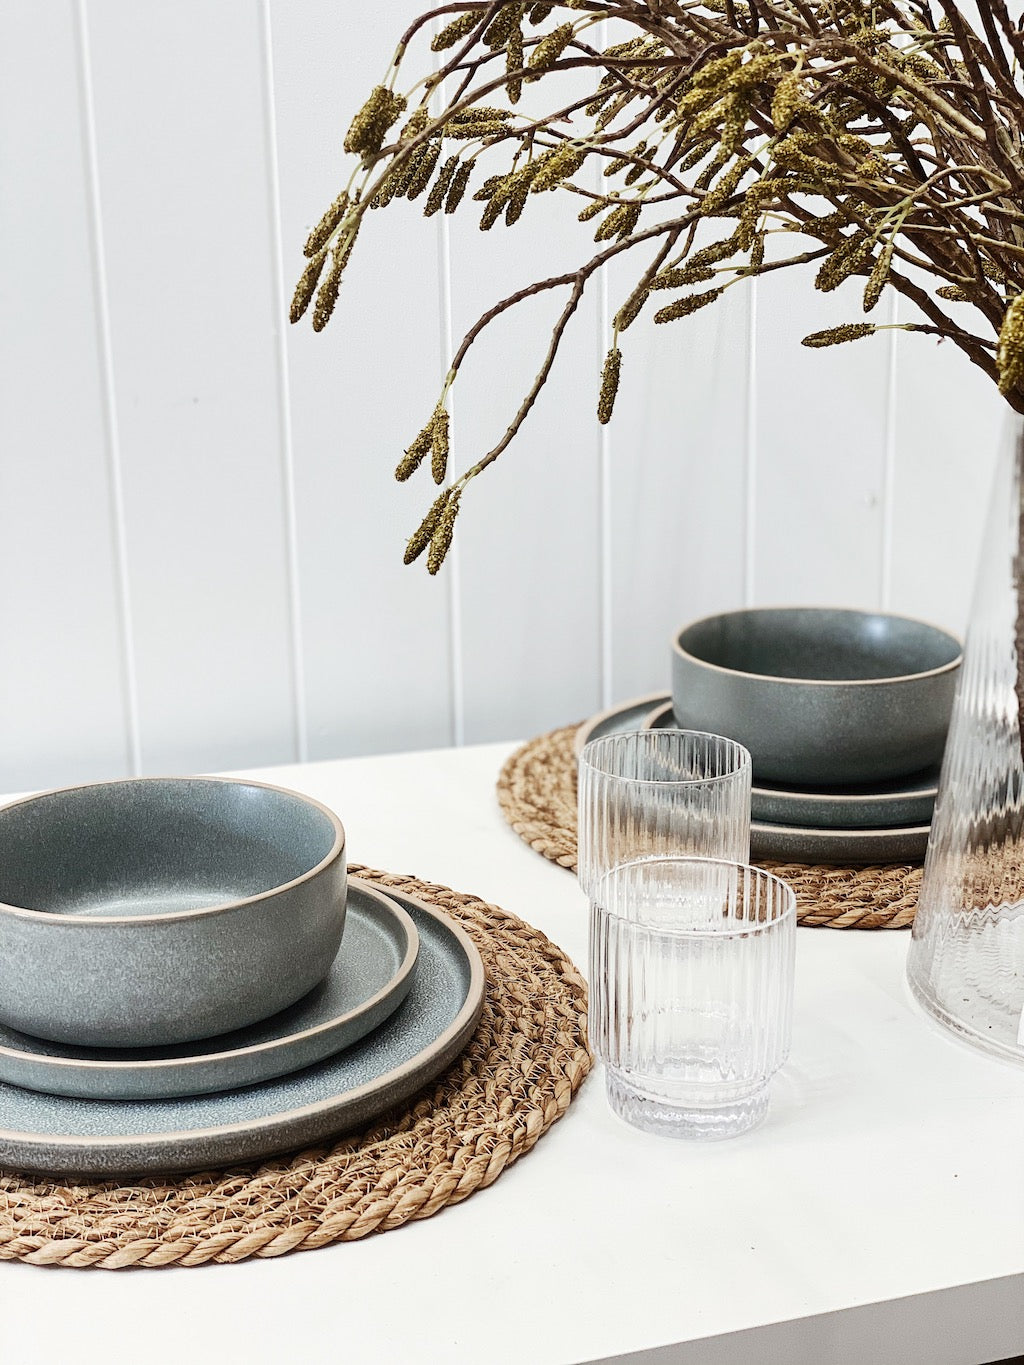 VERA Tumbler Glass Set - 4 Piece - Functional and stylish, our VERA Tumbler Glass set of 4 by Salt&Pepper will have you serving up your favourite refreshments in style. Unique ribbed texture. Shop online. AfterPay available. Australia wide Shipping | Bliss Gifts & Homewares - Unit 8, 259 Princes Hwy Ulladulla - 0427795959, 44541523